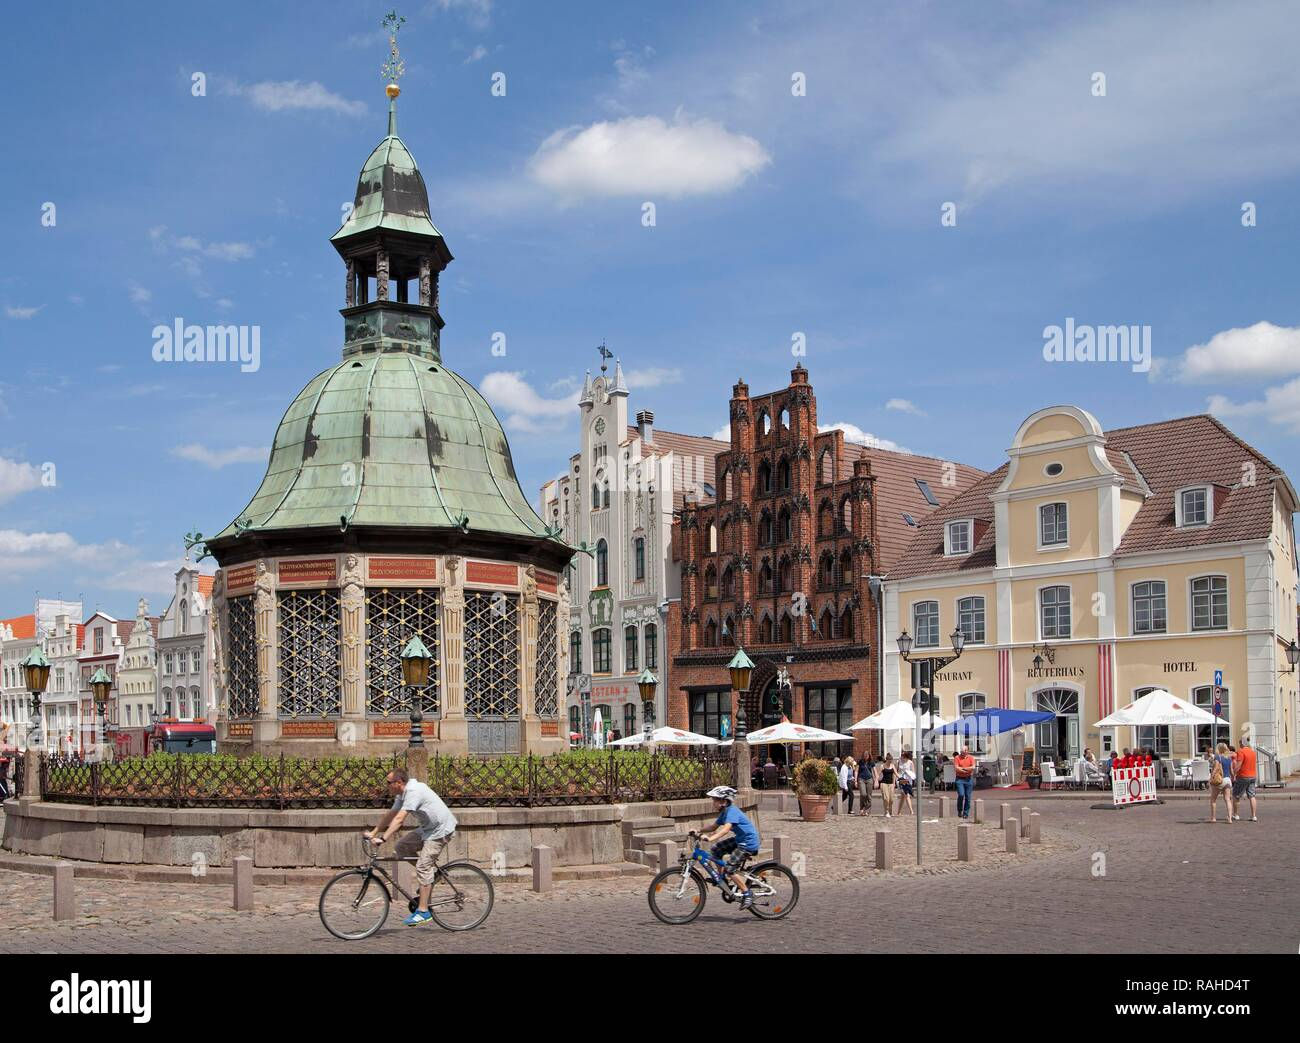 Market square or market place with the Wasserkunst fountain and the 'Old Swede' warehouse, Wismar, Mecklenburg-Western Pomerania - Stock Image